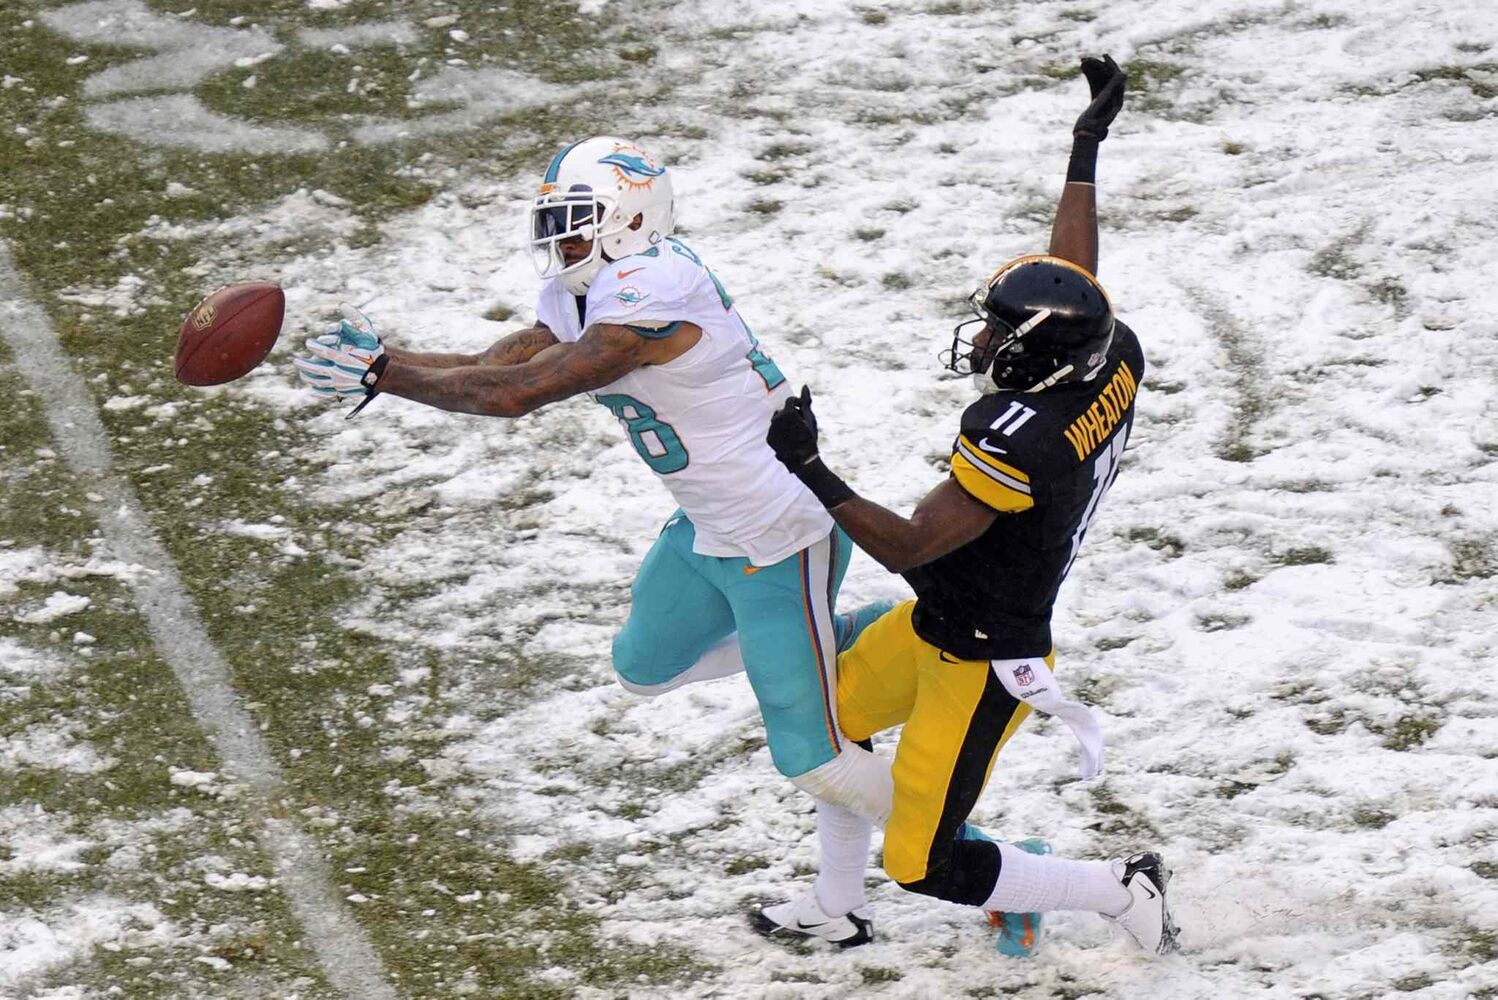 Miami Dolphins cornerback Nolan Carroll (left) can't come up with the interception of a pass intended for Pittsburgh Steelers wide receiver Markus Wheaton during the second half of an NFL football game in Pittsburgh on Sunday. (Don Wright / The Associated Press)